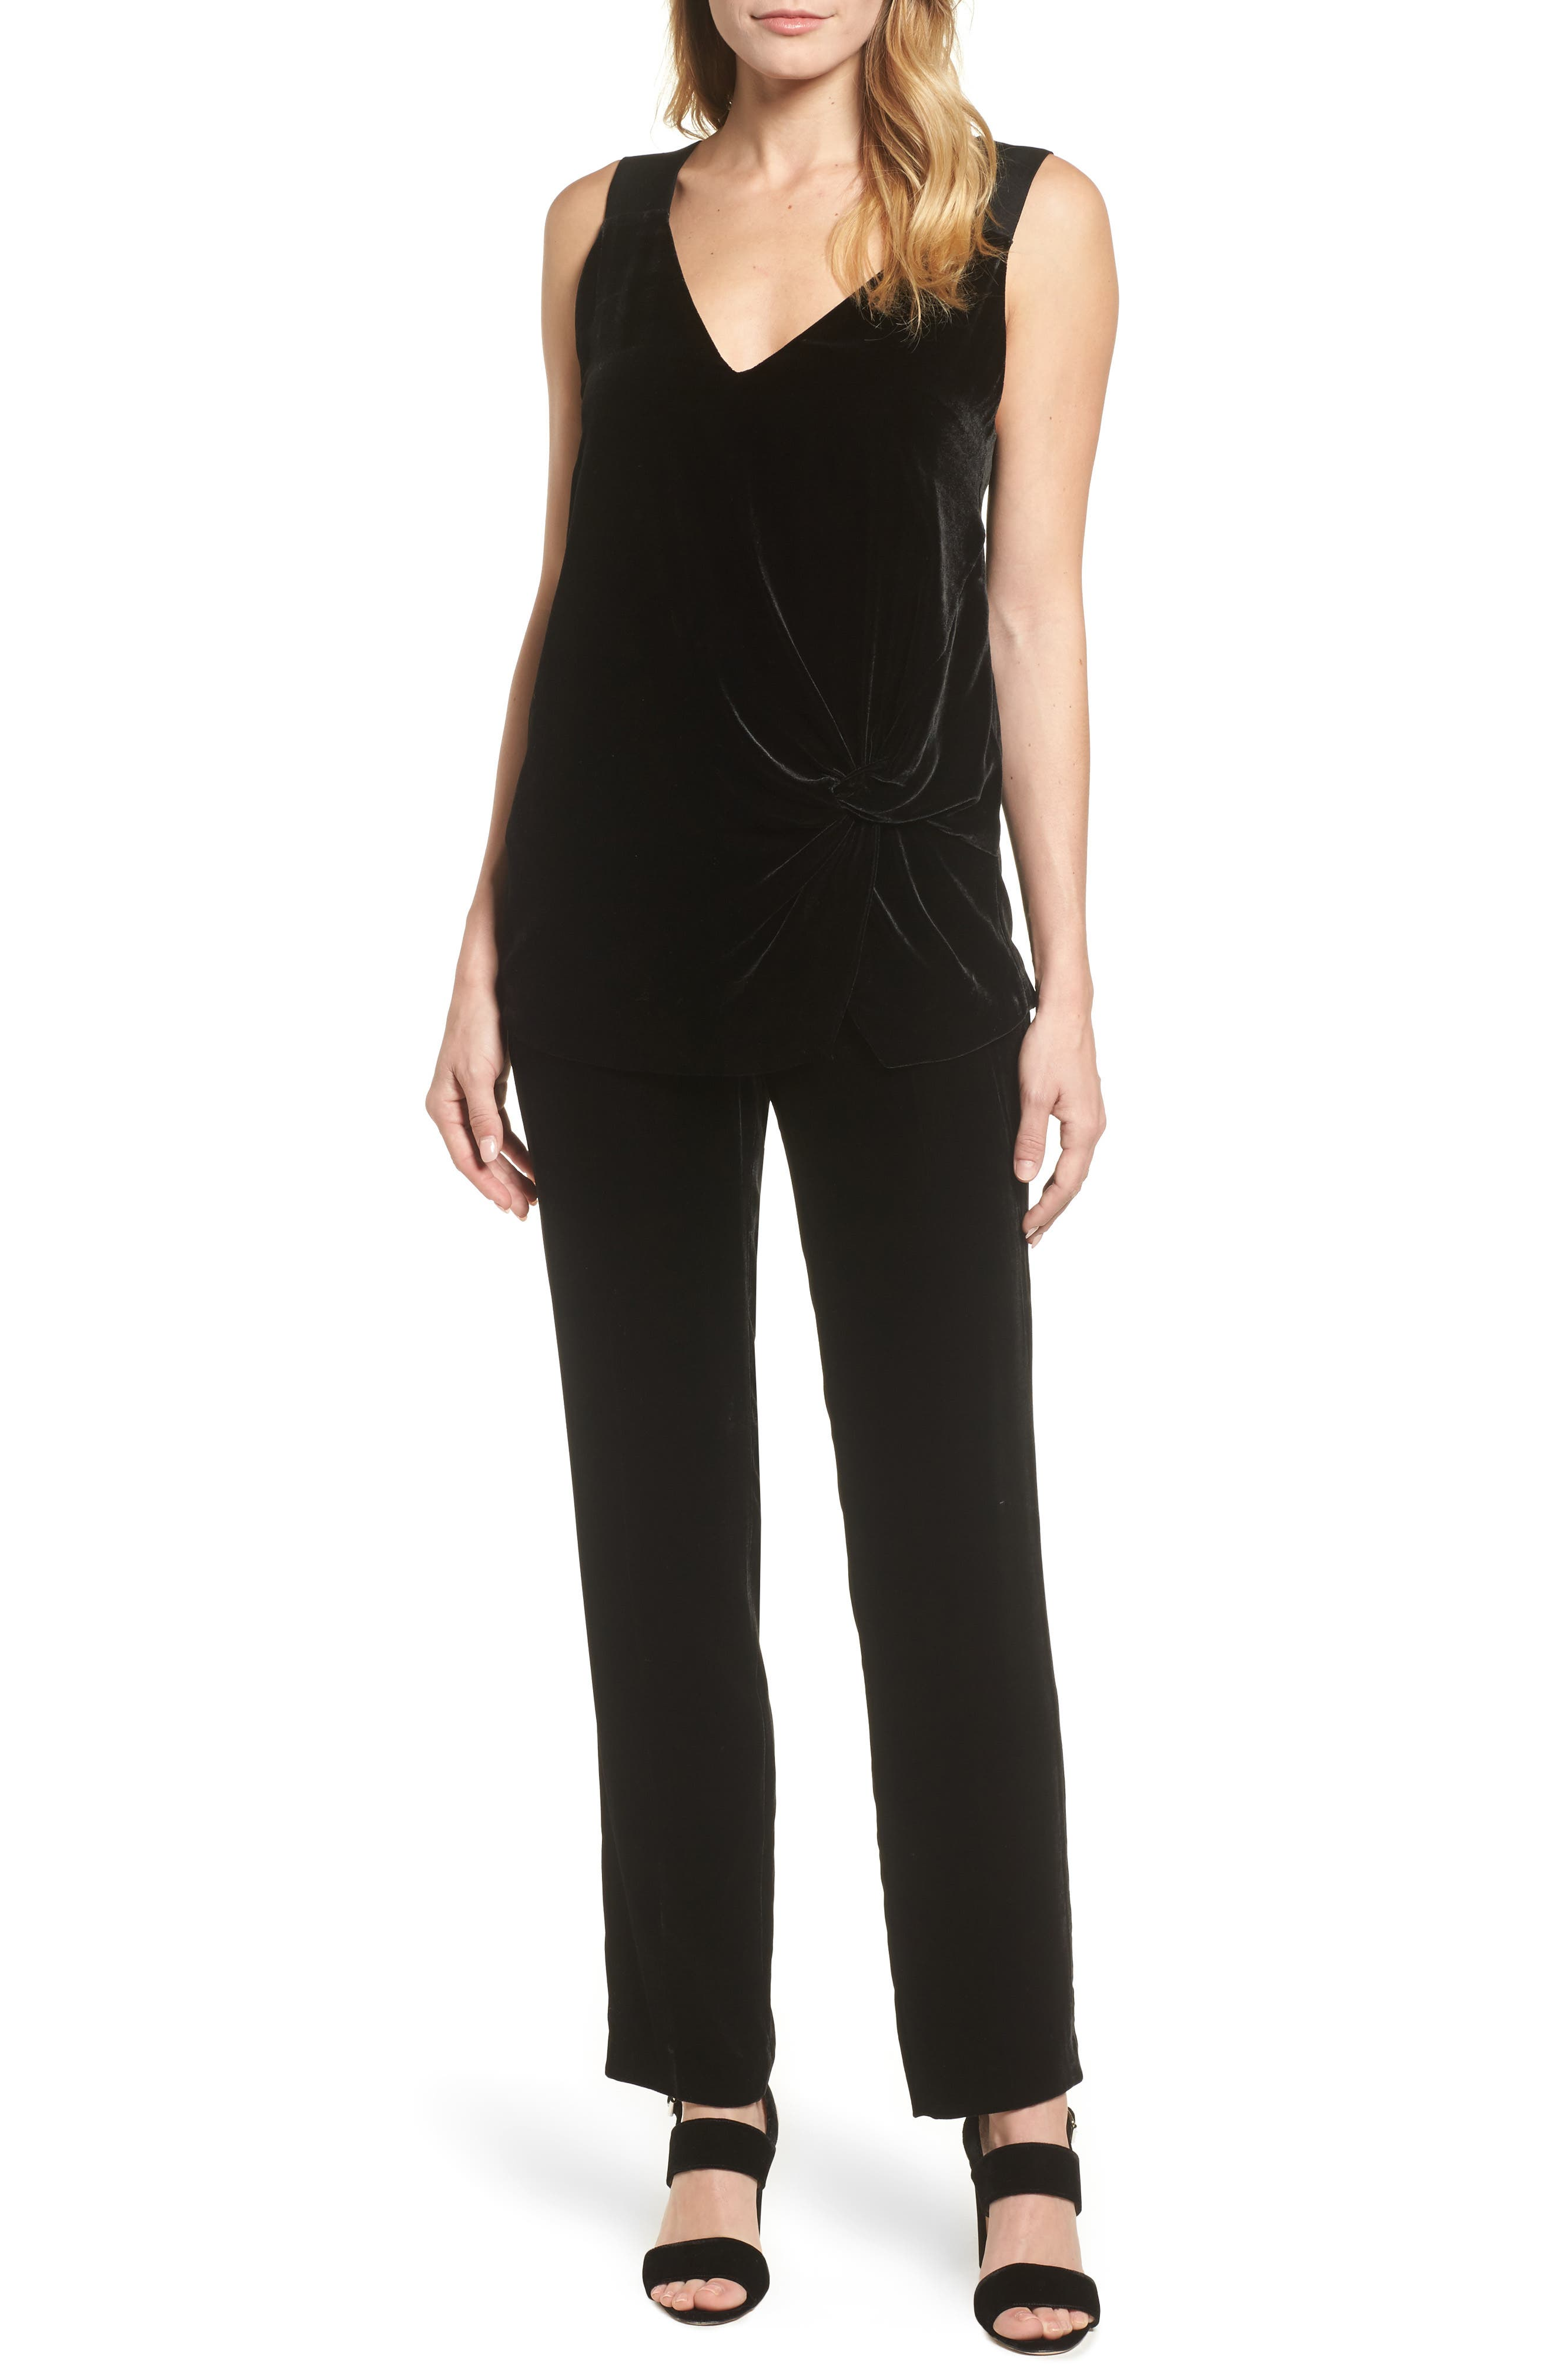 Tolesa Straight Leg Velvet Pants,                             Alternate thumbnail 7, color,                             001